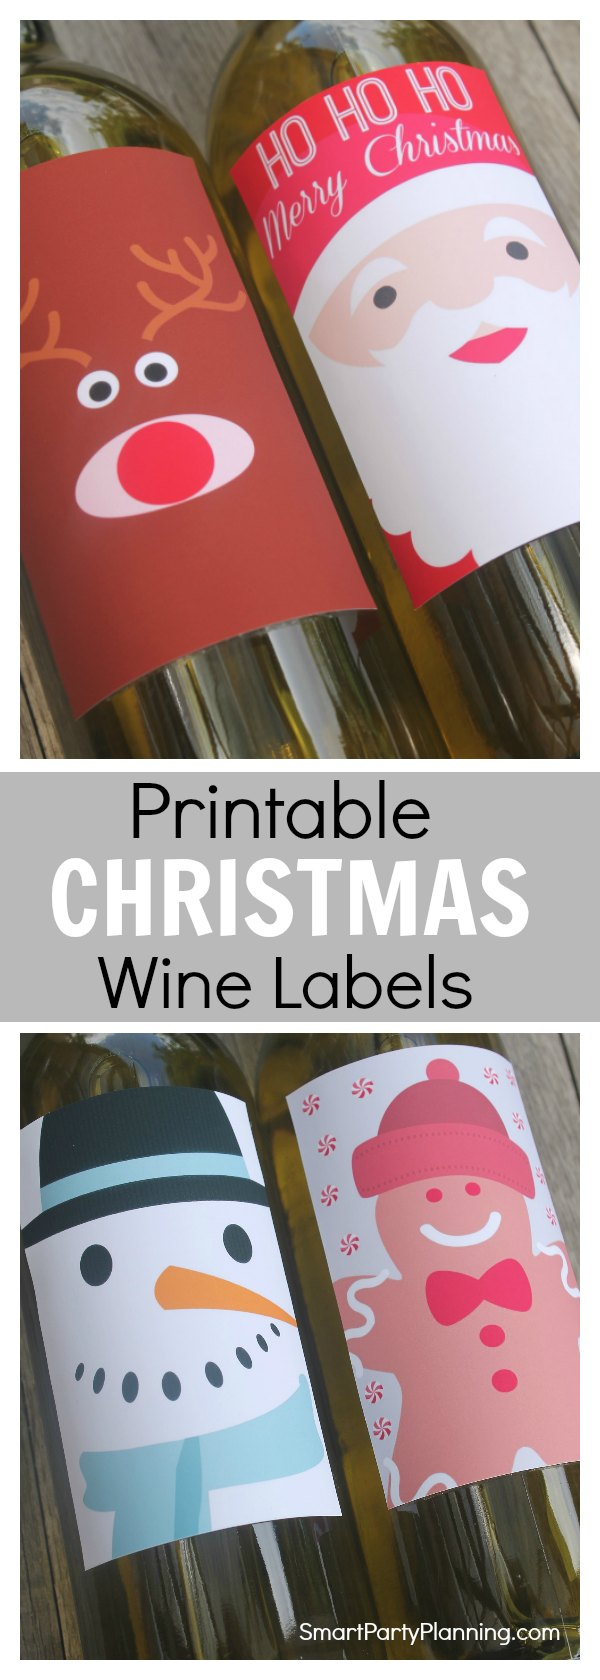 These instant printable Christmas wine labels will add the final festive touch to your holiday preparations. They are great to use at Christmas parties, or to use for gifts. You can guarantee that the whole family will love them. The printable Christmas wine labels are easy to download and all you need to do is attach them to your favorite bottle of wine. This is the perfect Christmas craft project.